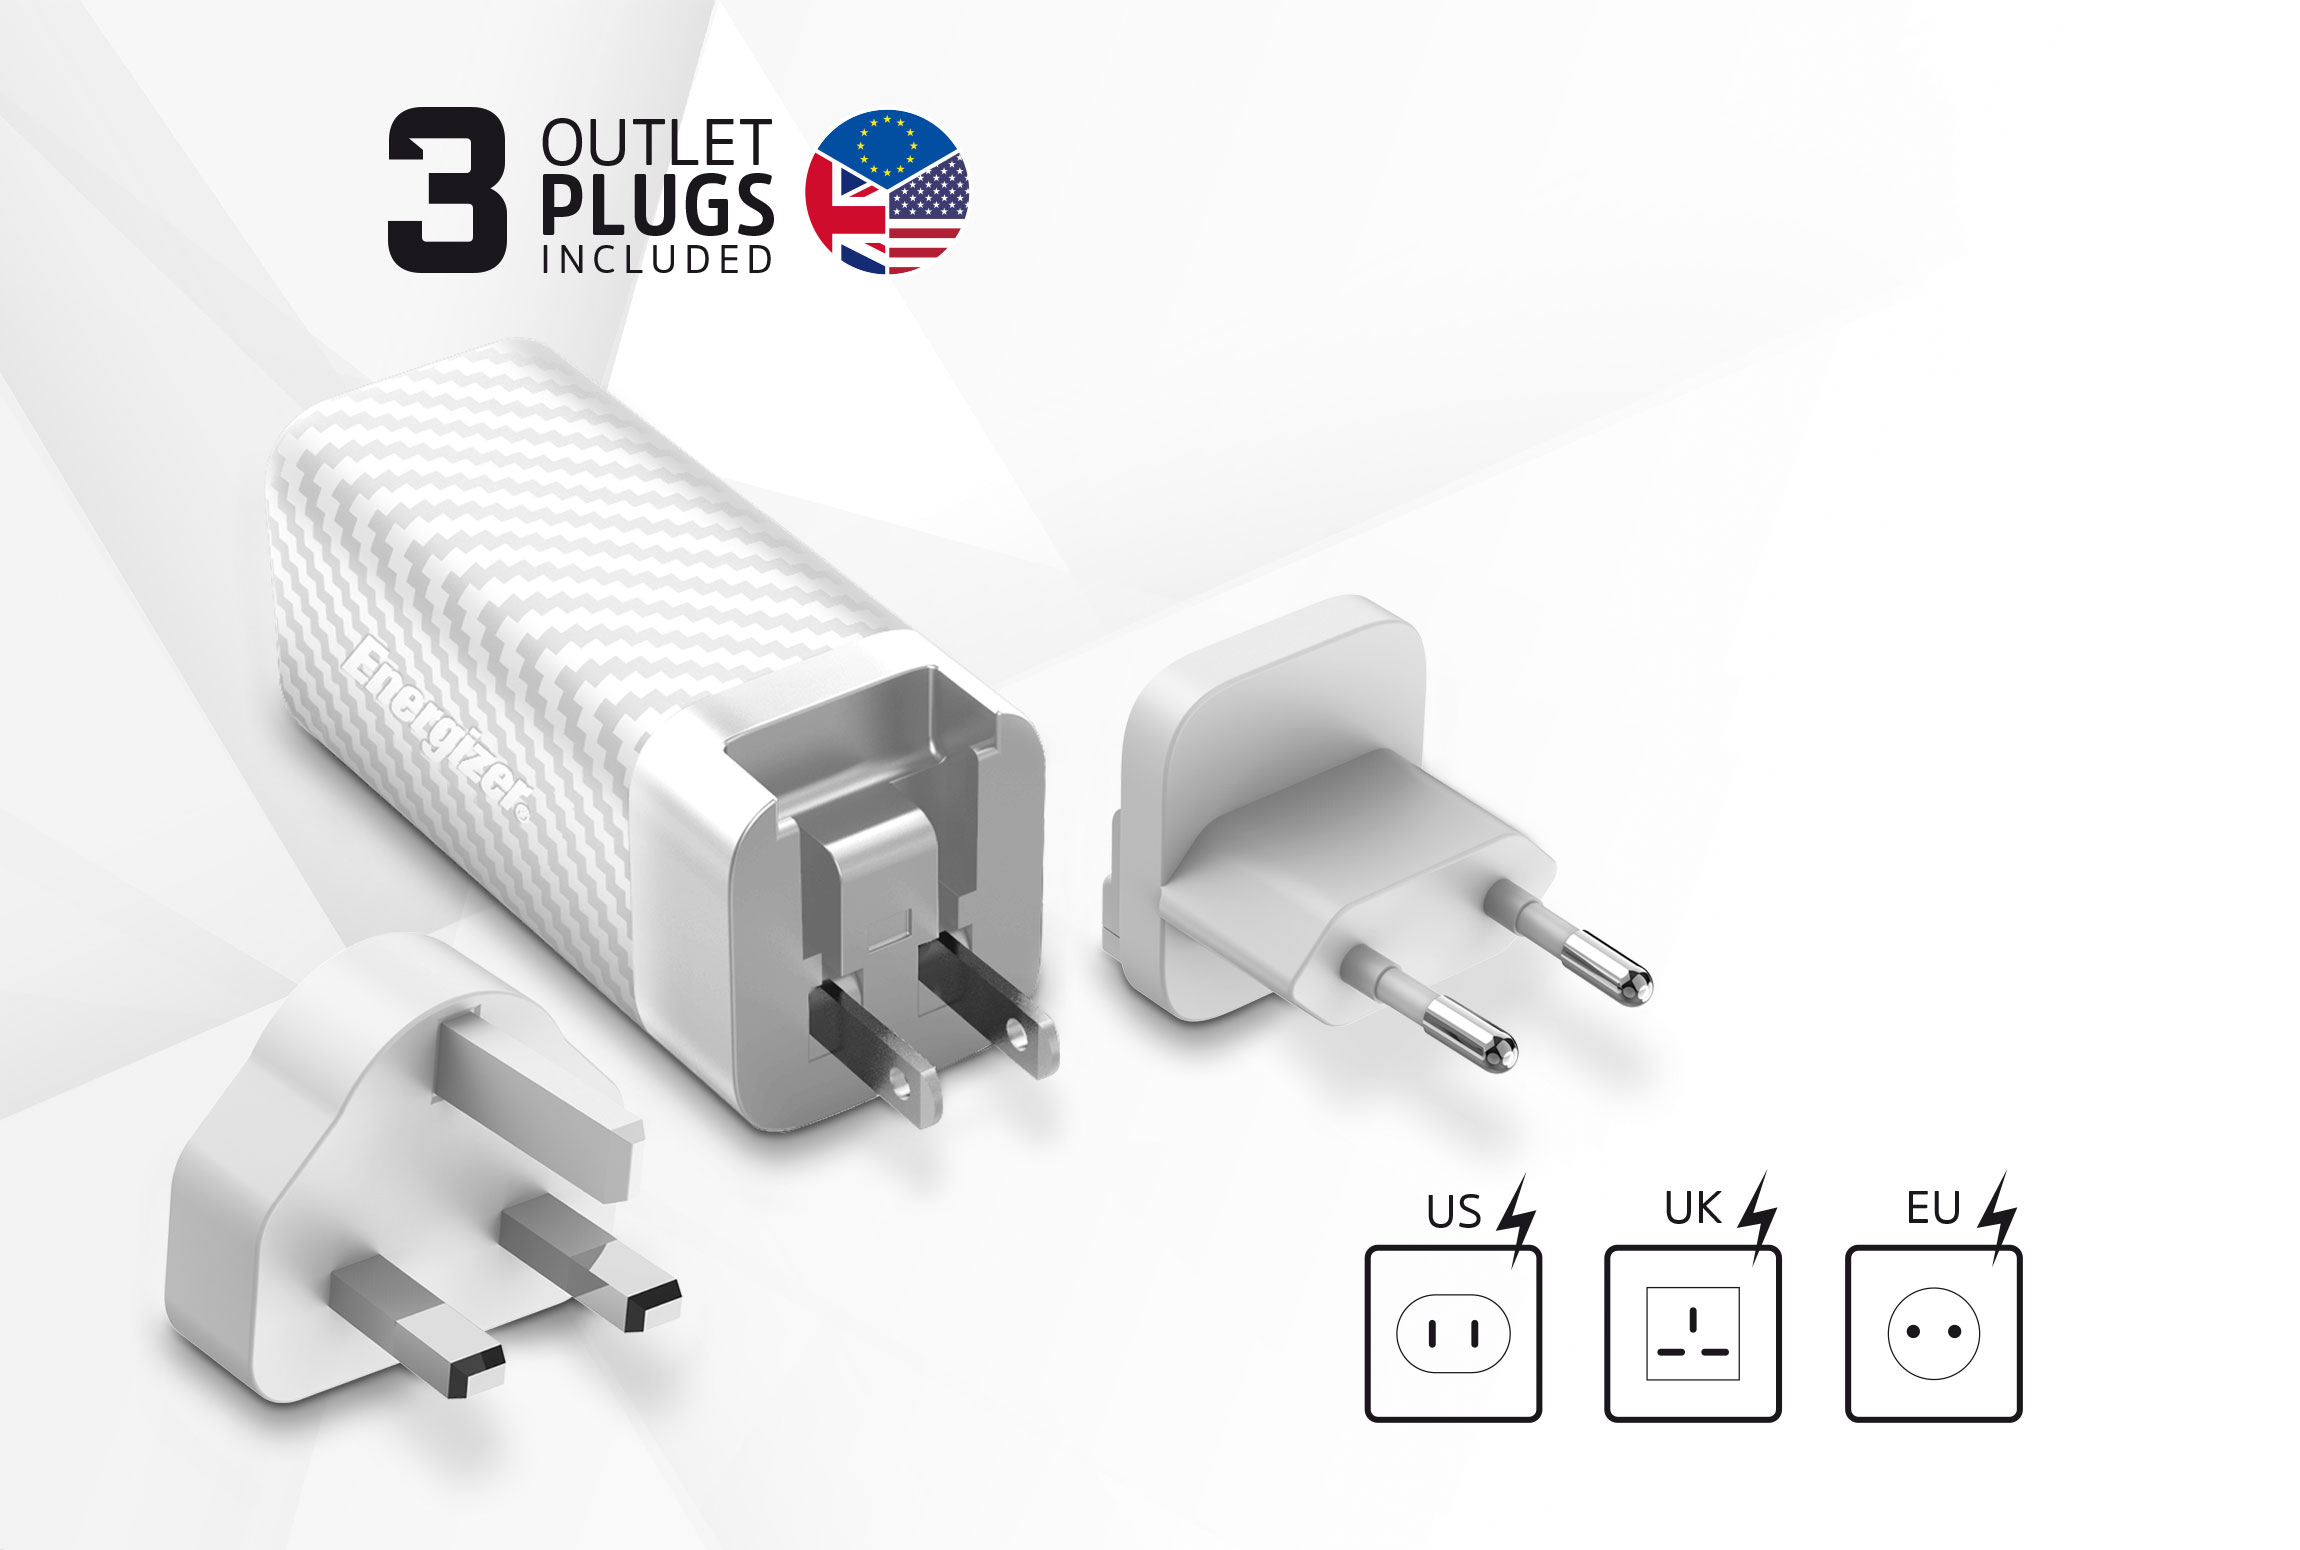 AT-wall-chargers-PDGAN-plugs.jpg